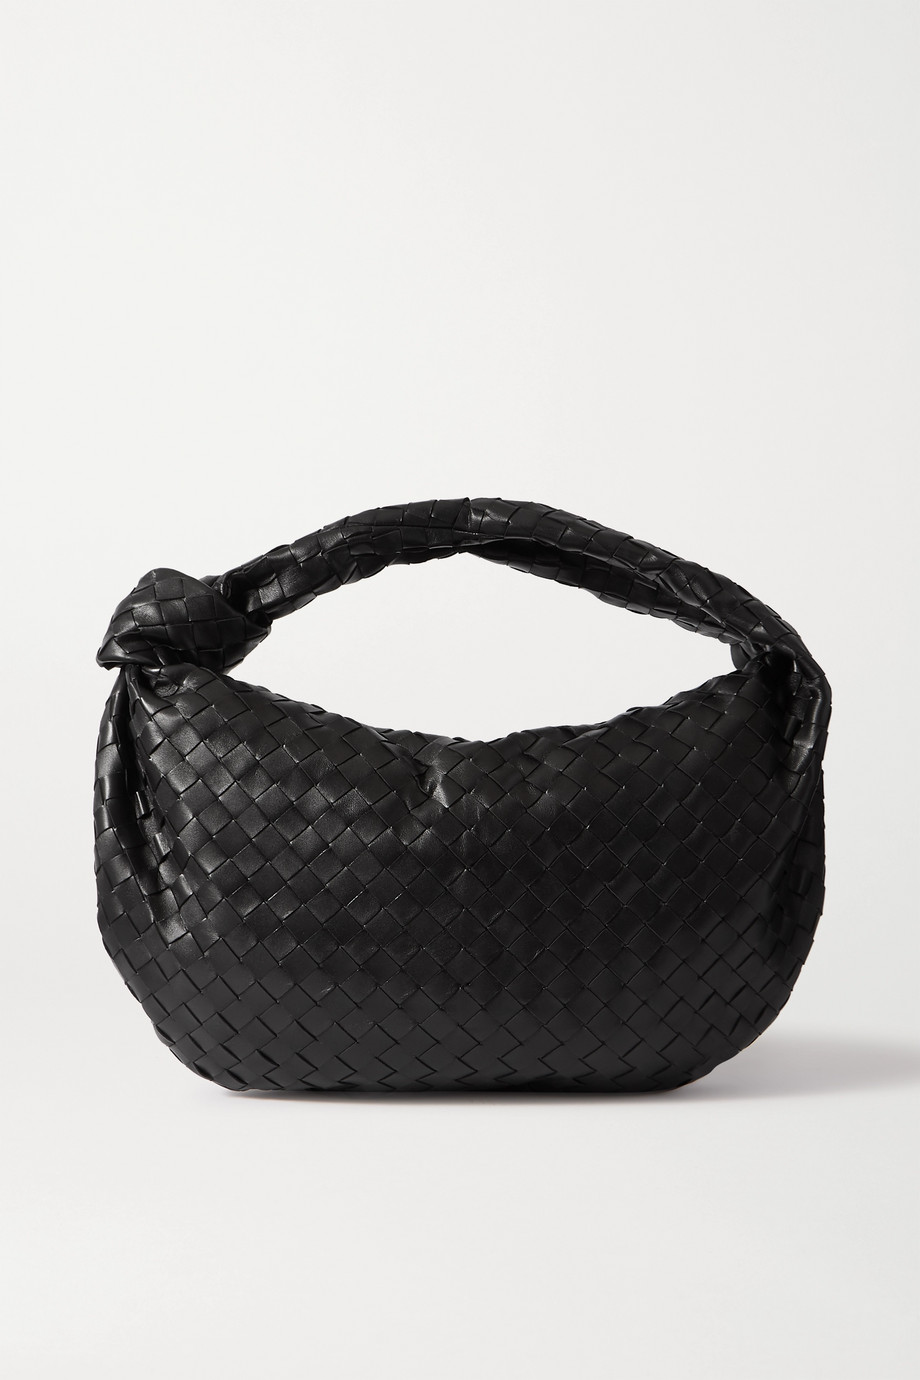 Jodie small knotted intrecciato leather tote by Bottega-Veneta, available on net-a-porter.com for $3 Kylie Jenner Bags Exact Product